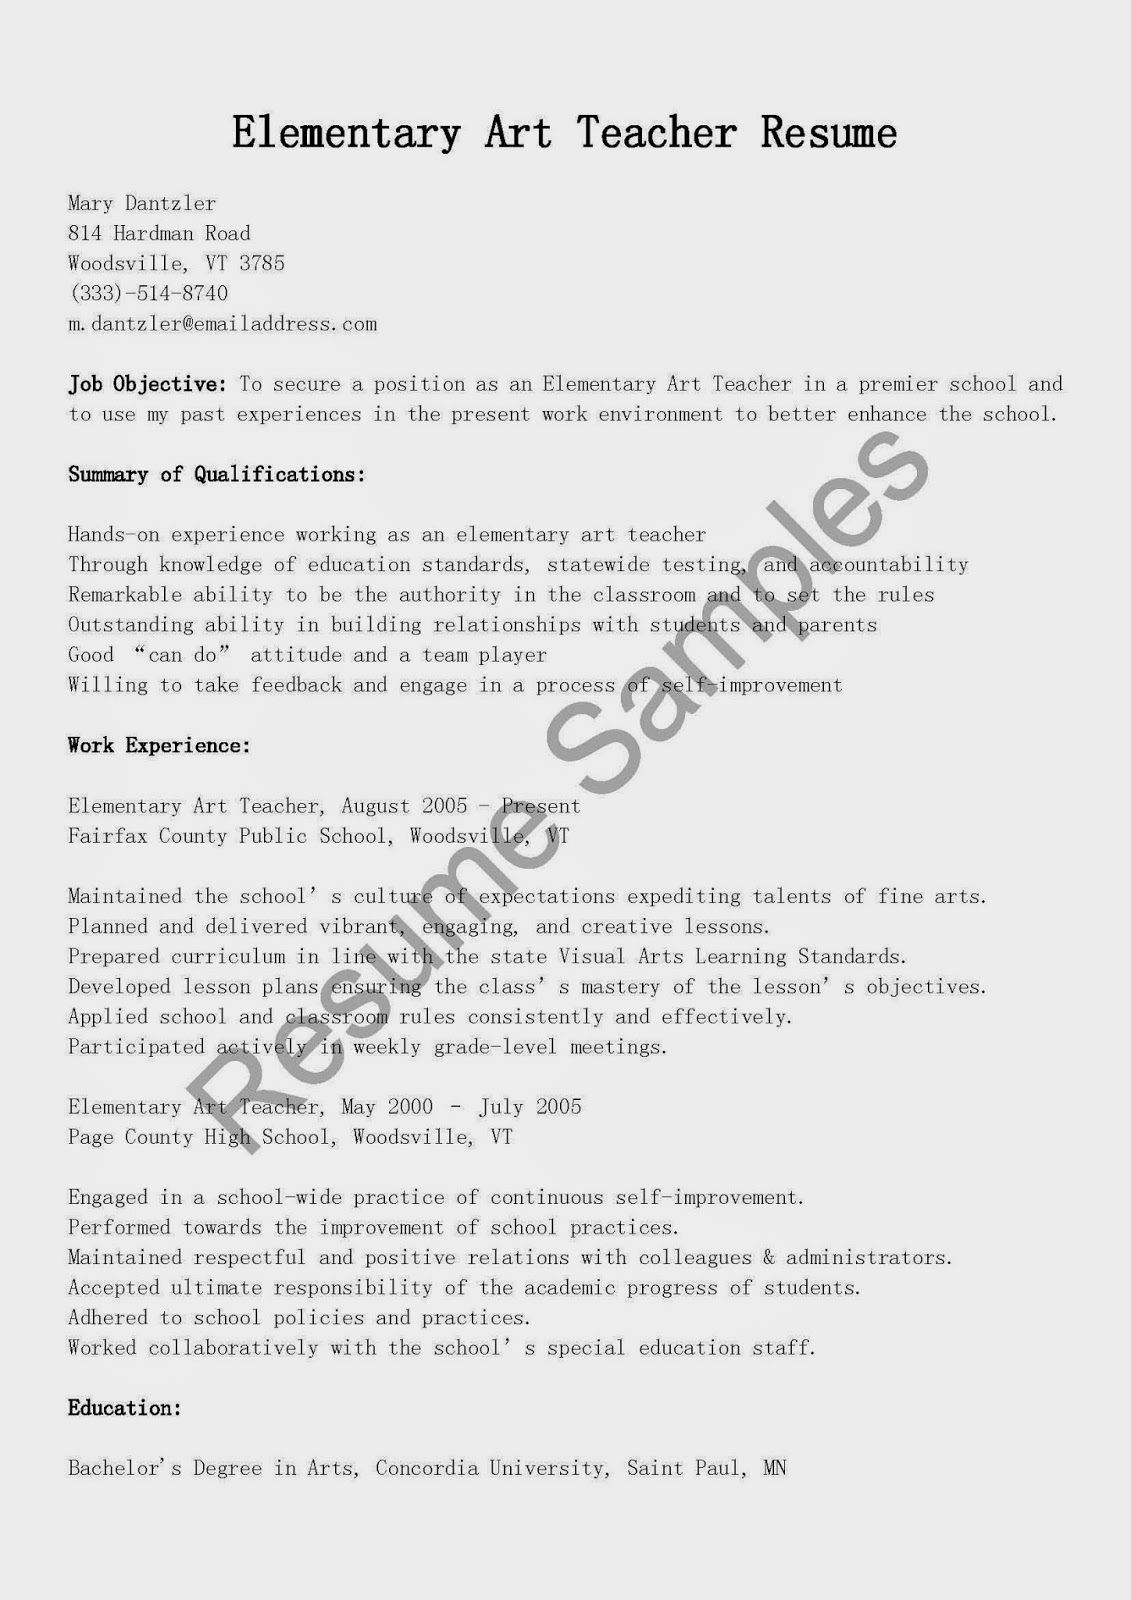 Cover Letter Art Teacher Secondary Teacher Cover Letter Australia Cover  Letter Templates Teacher Cover Letter Examples